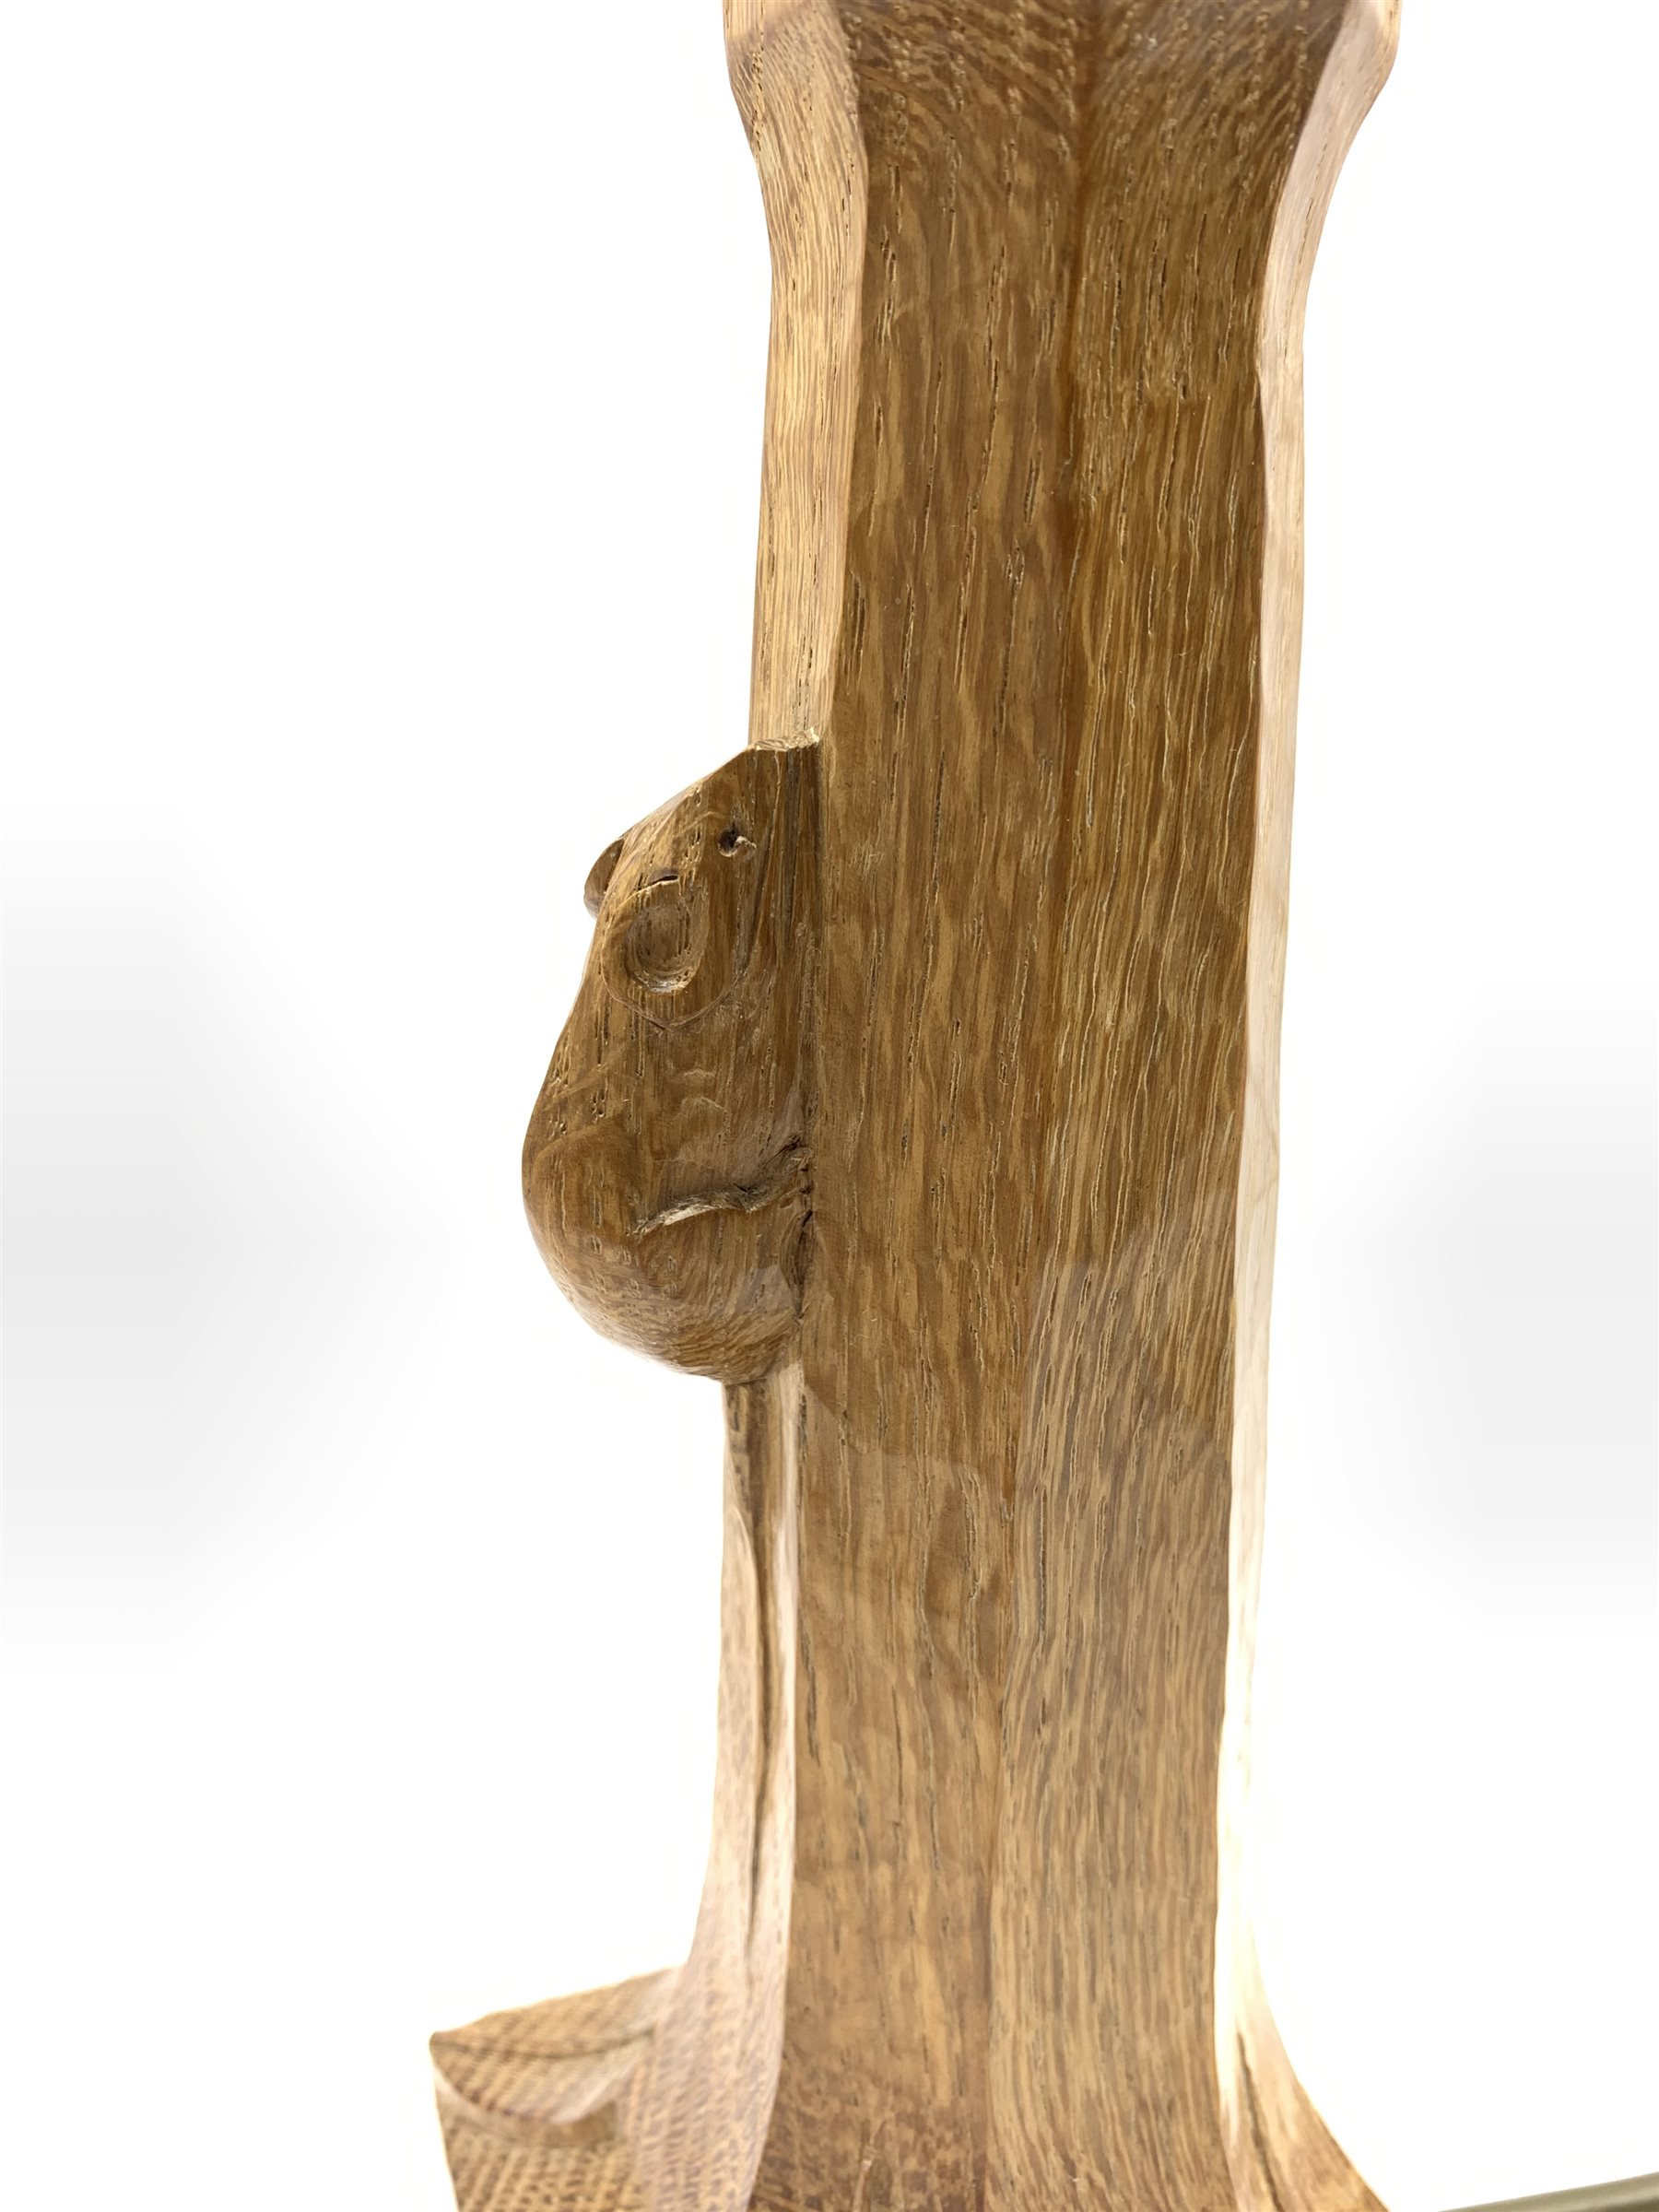 Thompson of Kilburn 'Mouseman' adzed oak table lamp with octagonal stem on a leaf carved square base - Image 3 of 5